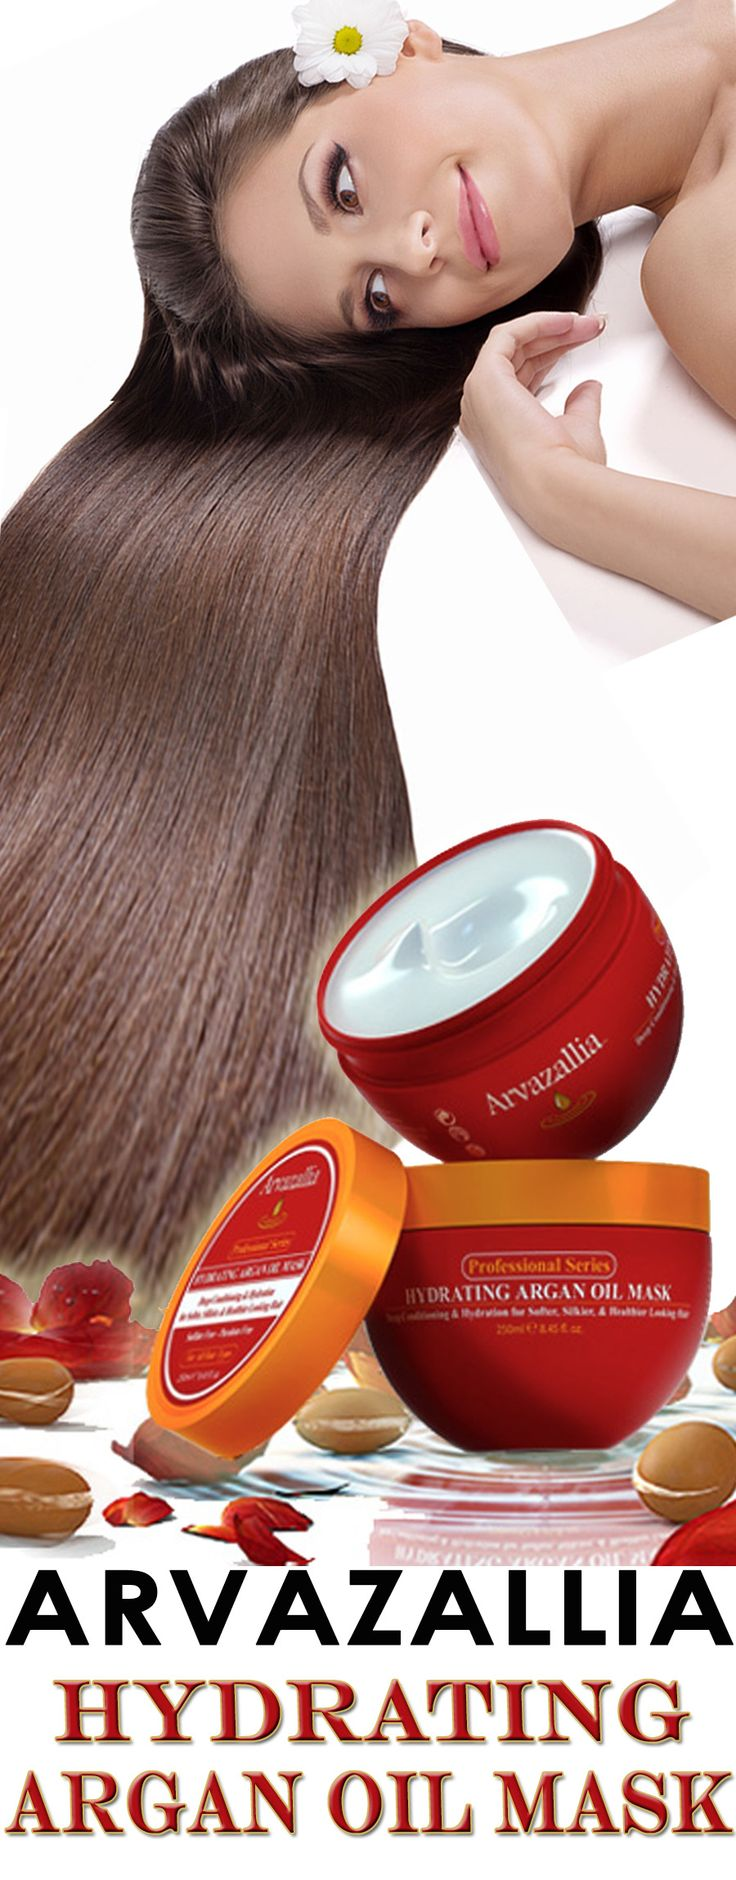 Arvazallia Hydrating Argan Oil Hair Mask and Deep Conditioner is Guaranteed to Make Your Hair Softer and Silkier. You will Fall In Love With Your Hair Again. Click Here to Learn More >> http://www.arvazallia.com/hydratingmaskpinpromo